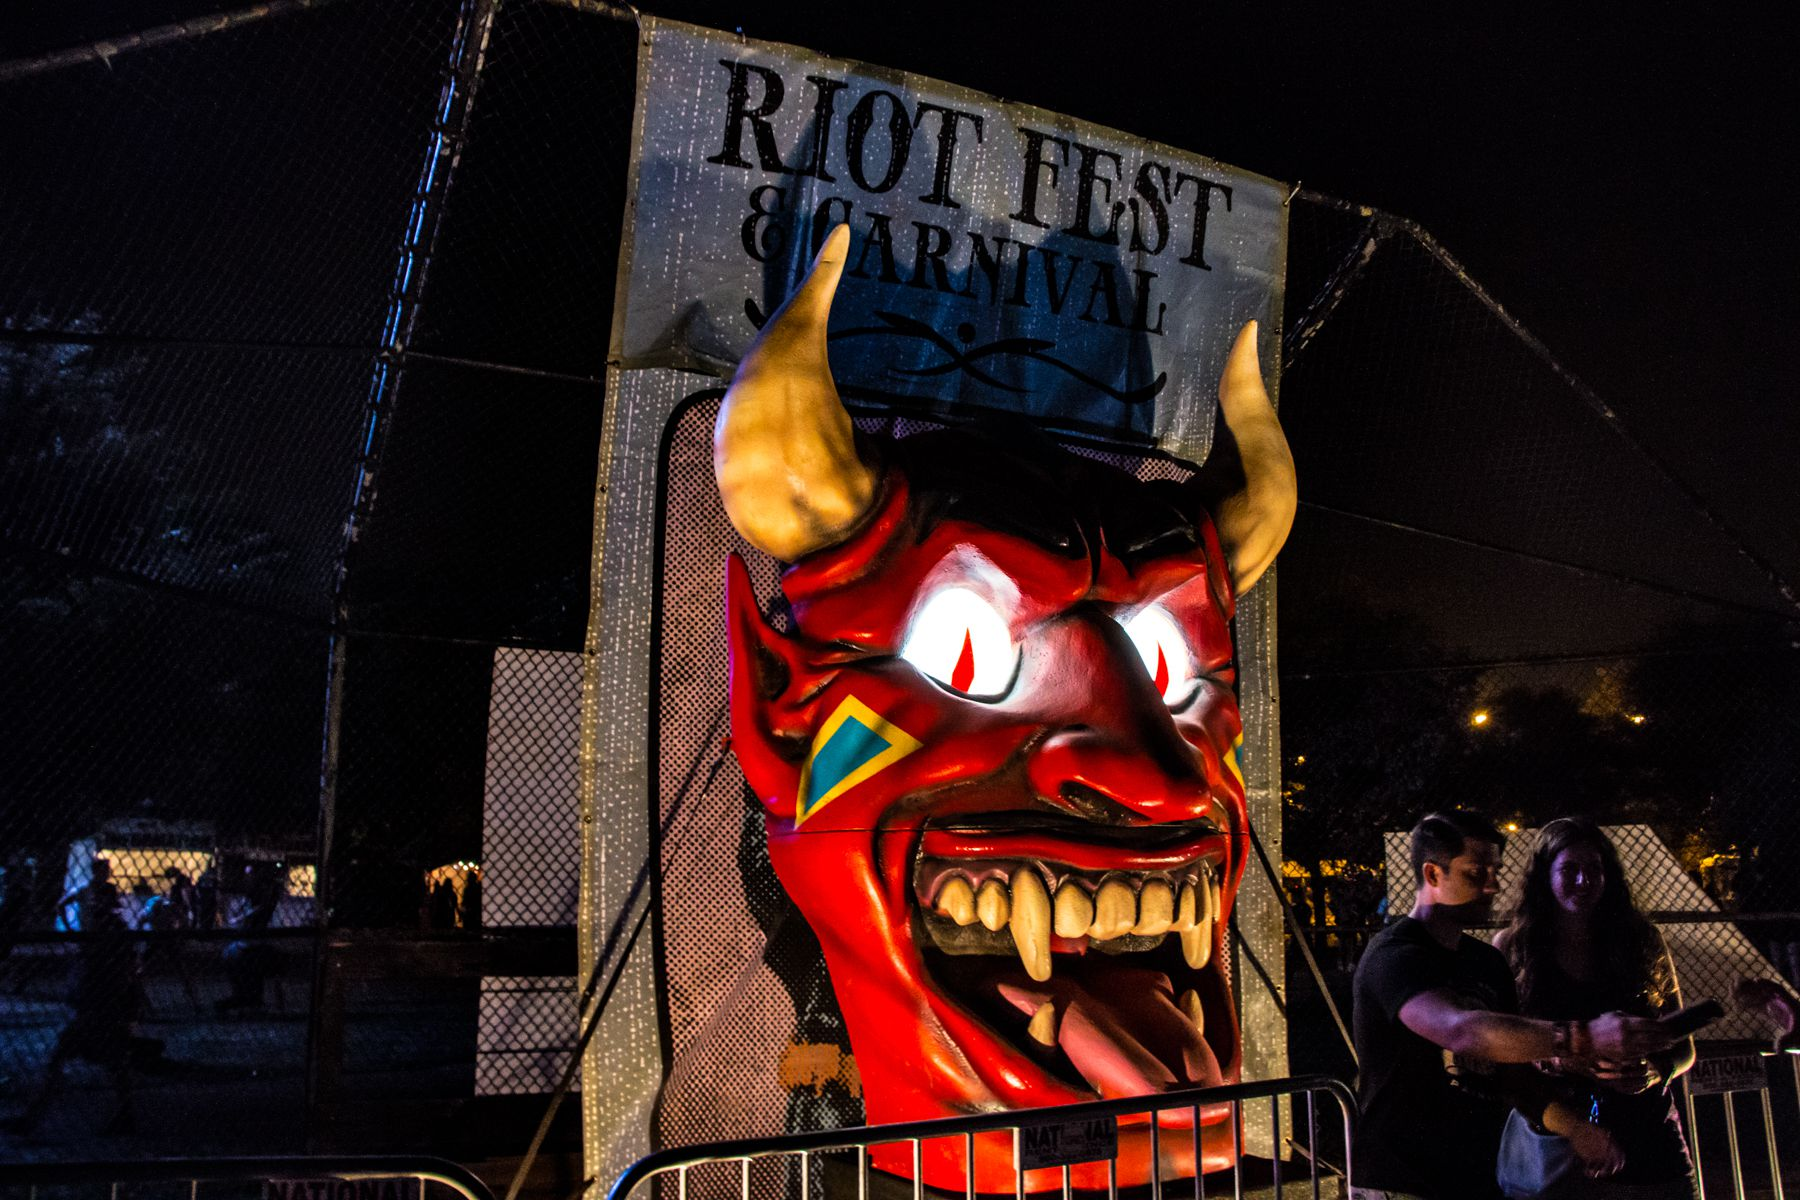 day 1 1 lior phillips Riot Fest 2017 Festival Review: From Worst to Best